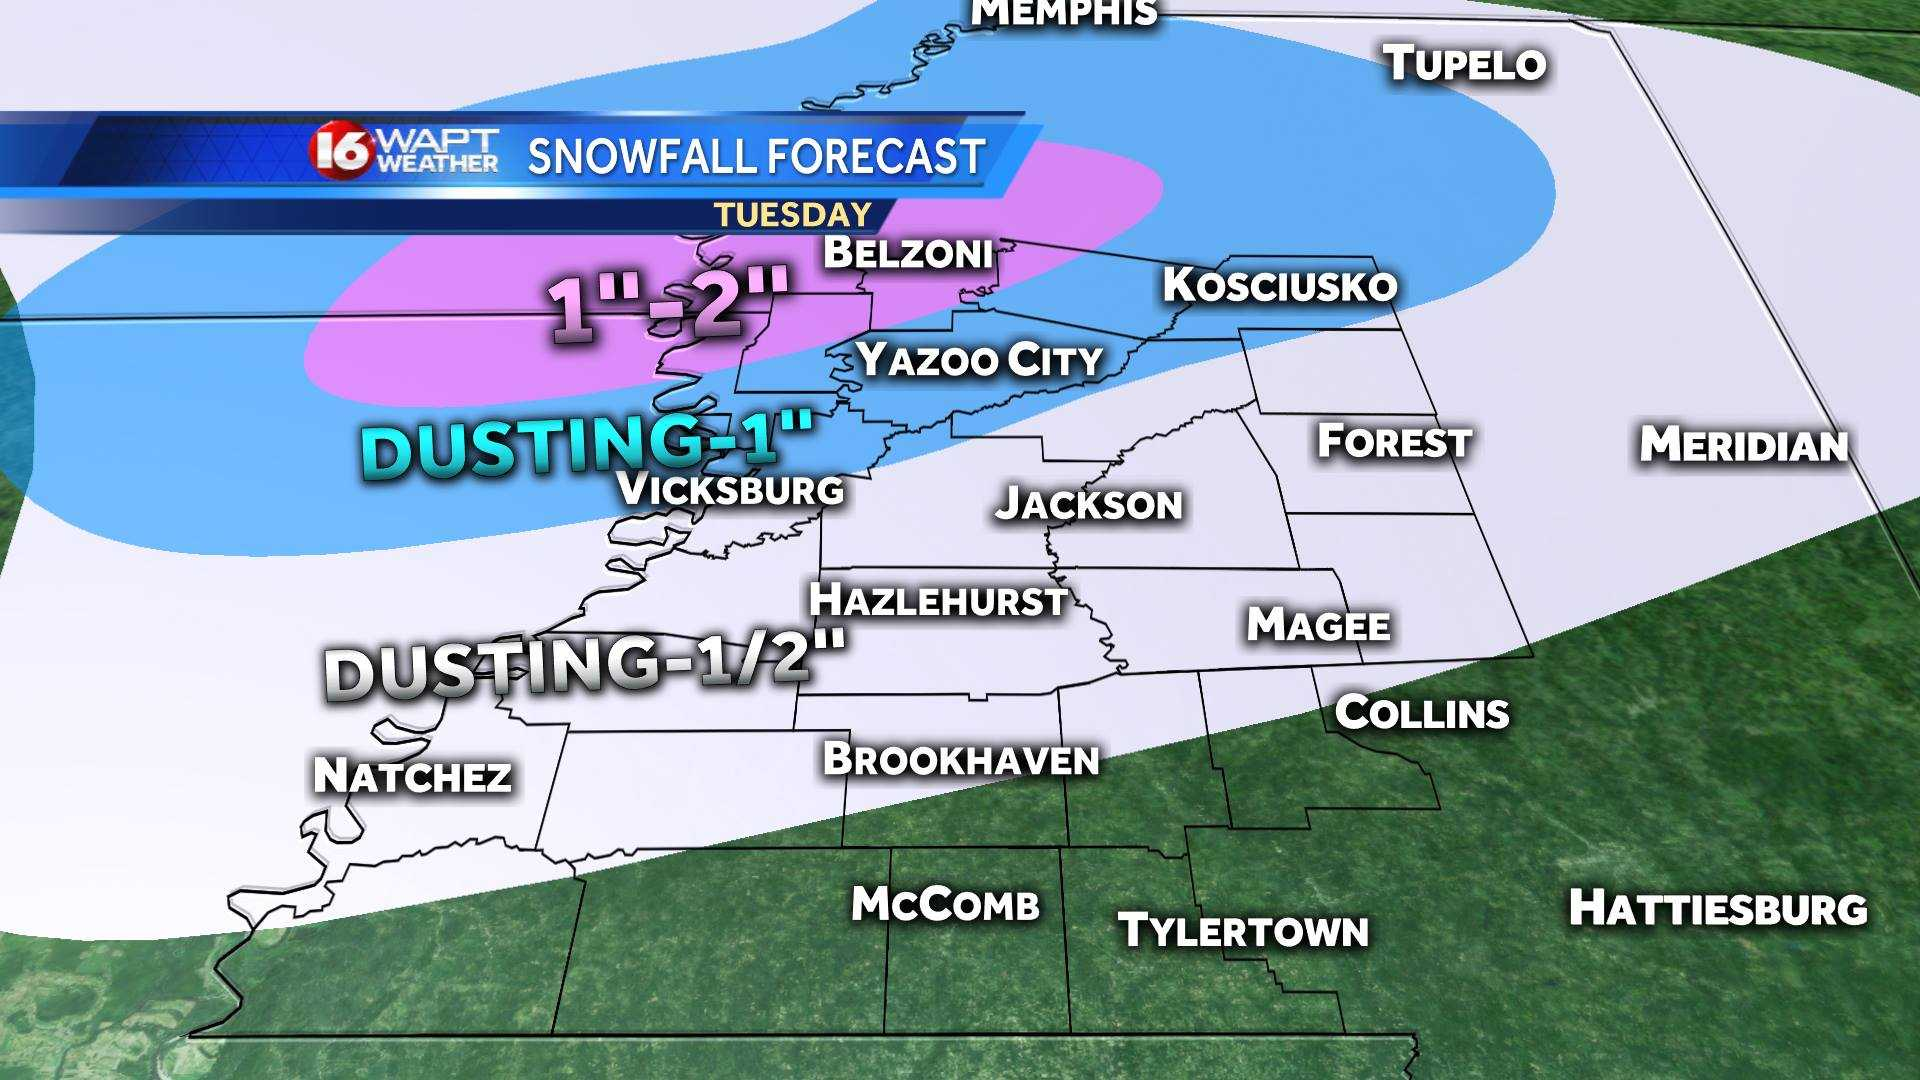 Snow chances trending lower for Wednesday